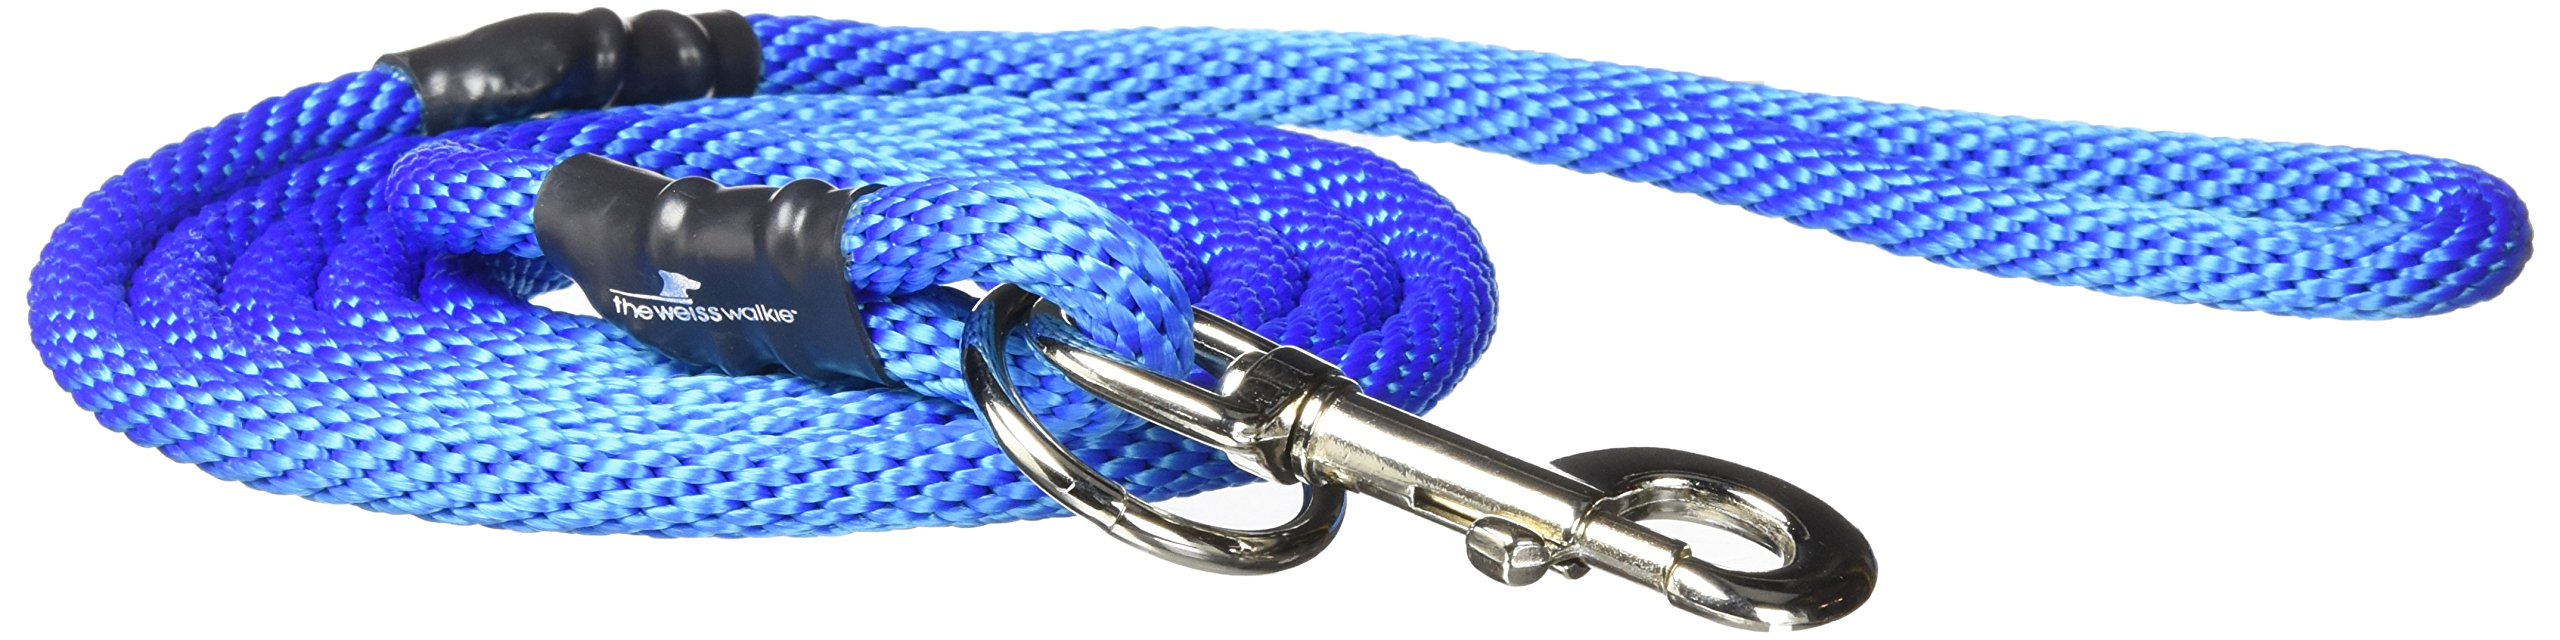 Weiss Walkie No Pull Dog Leash, Large, Blue by Weiss Walkie